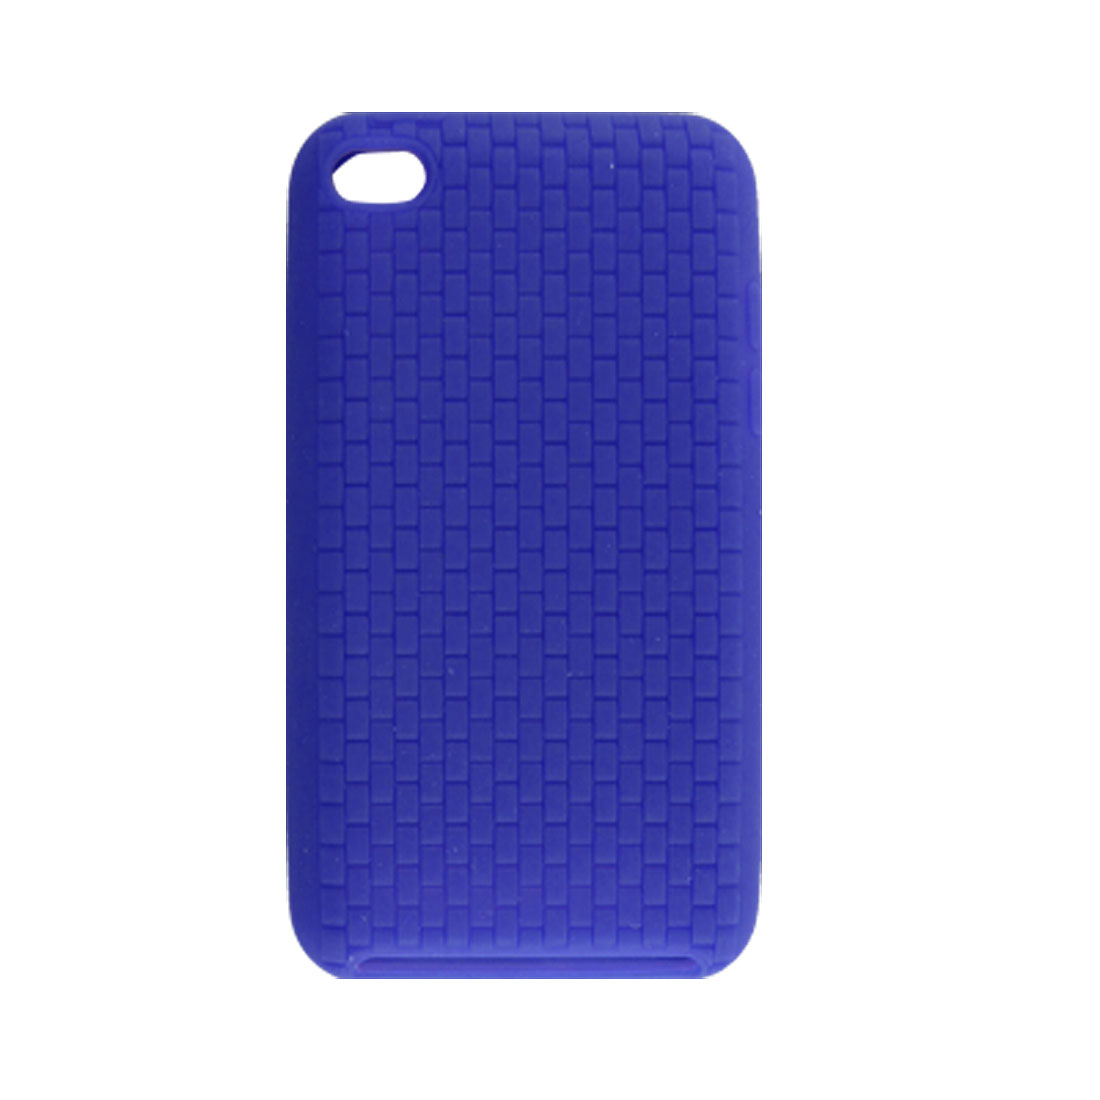 Blue Nonslip Protective Silicone Skin Case for iPod Touch 4G